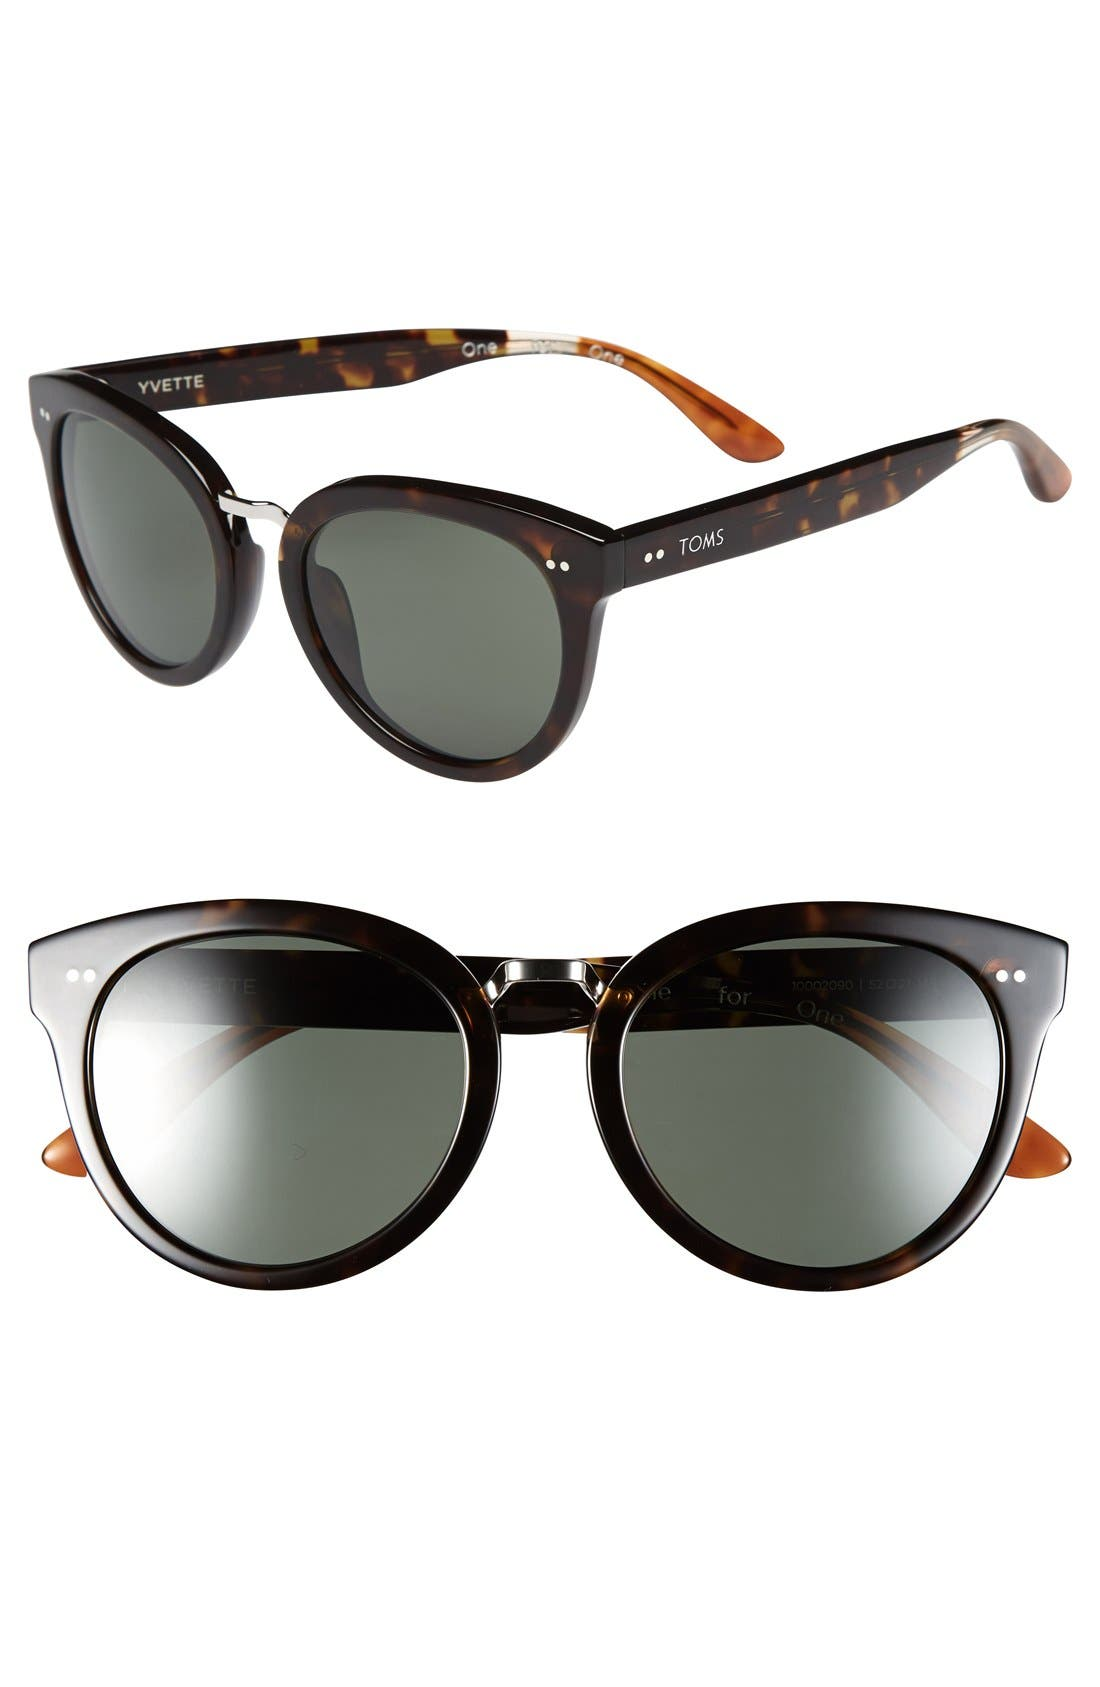 Main Image - TOMS 'Yvette' 52mm Polarized Sunglasses